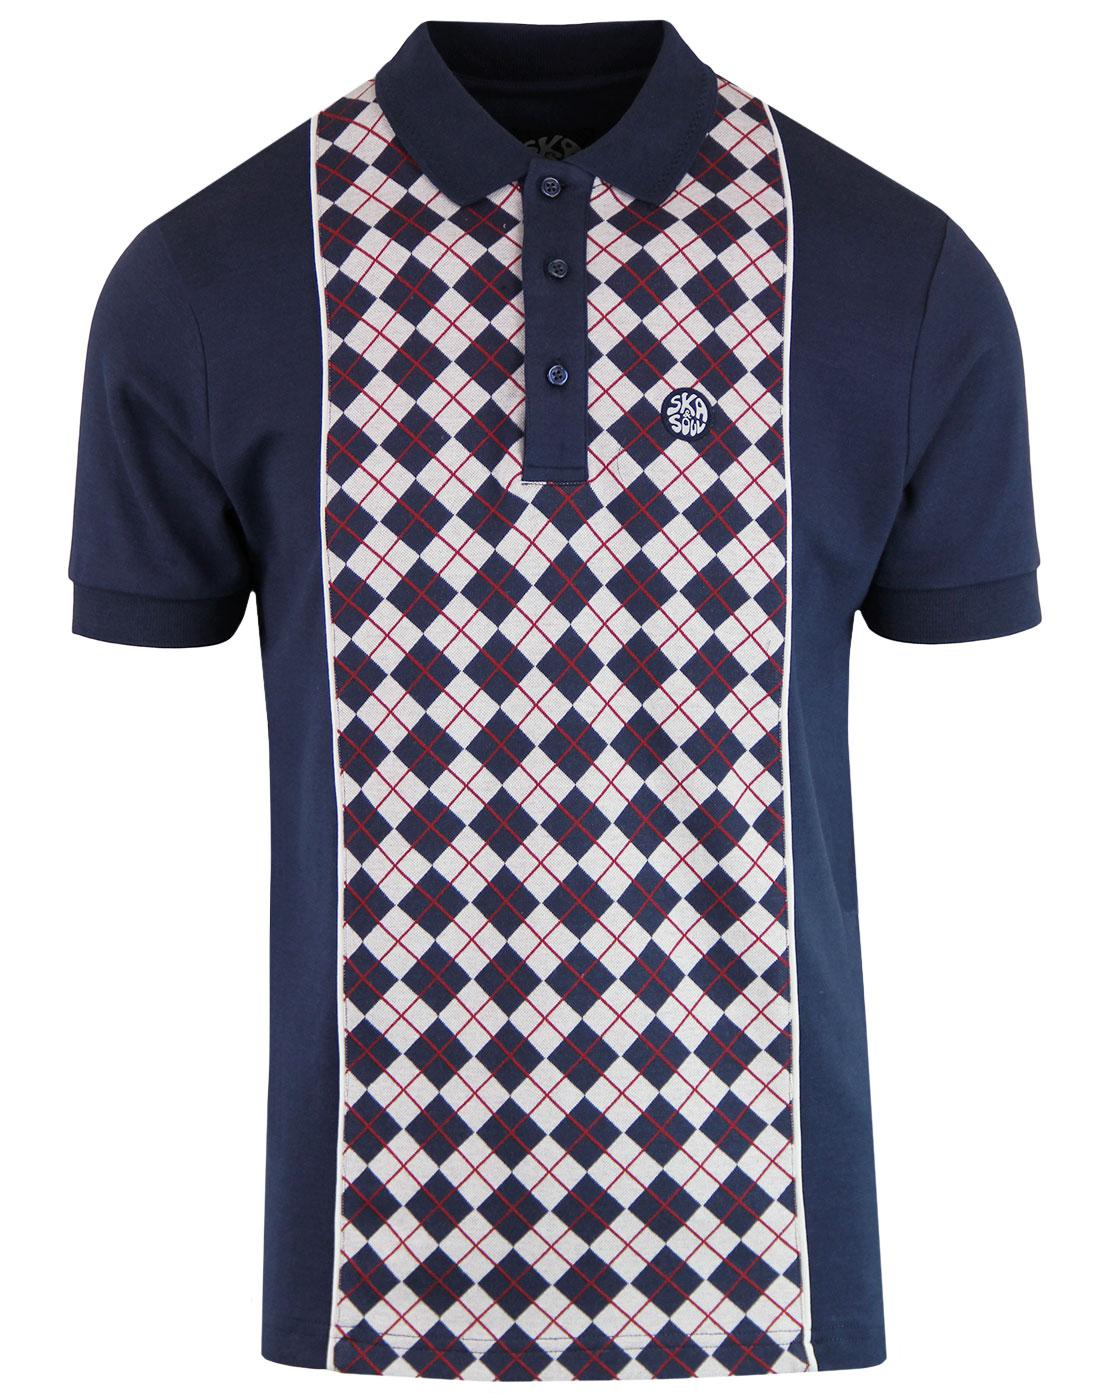 SKA & SOUL Retro Mod Argyle Panel Polo Shirt NAVY